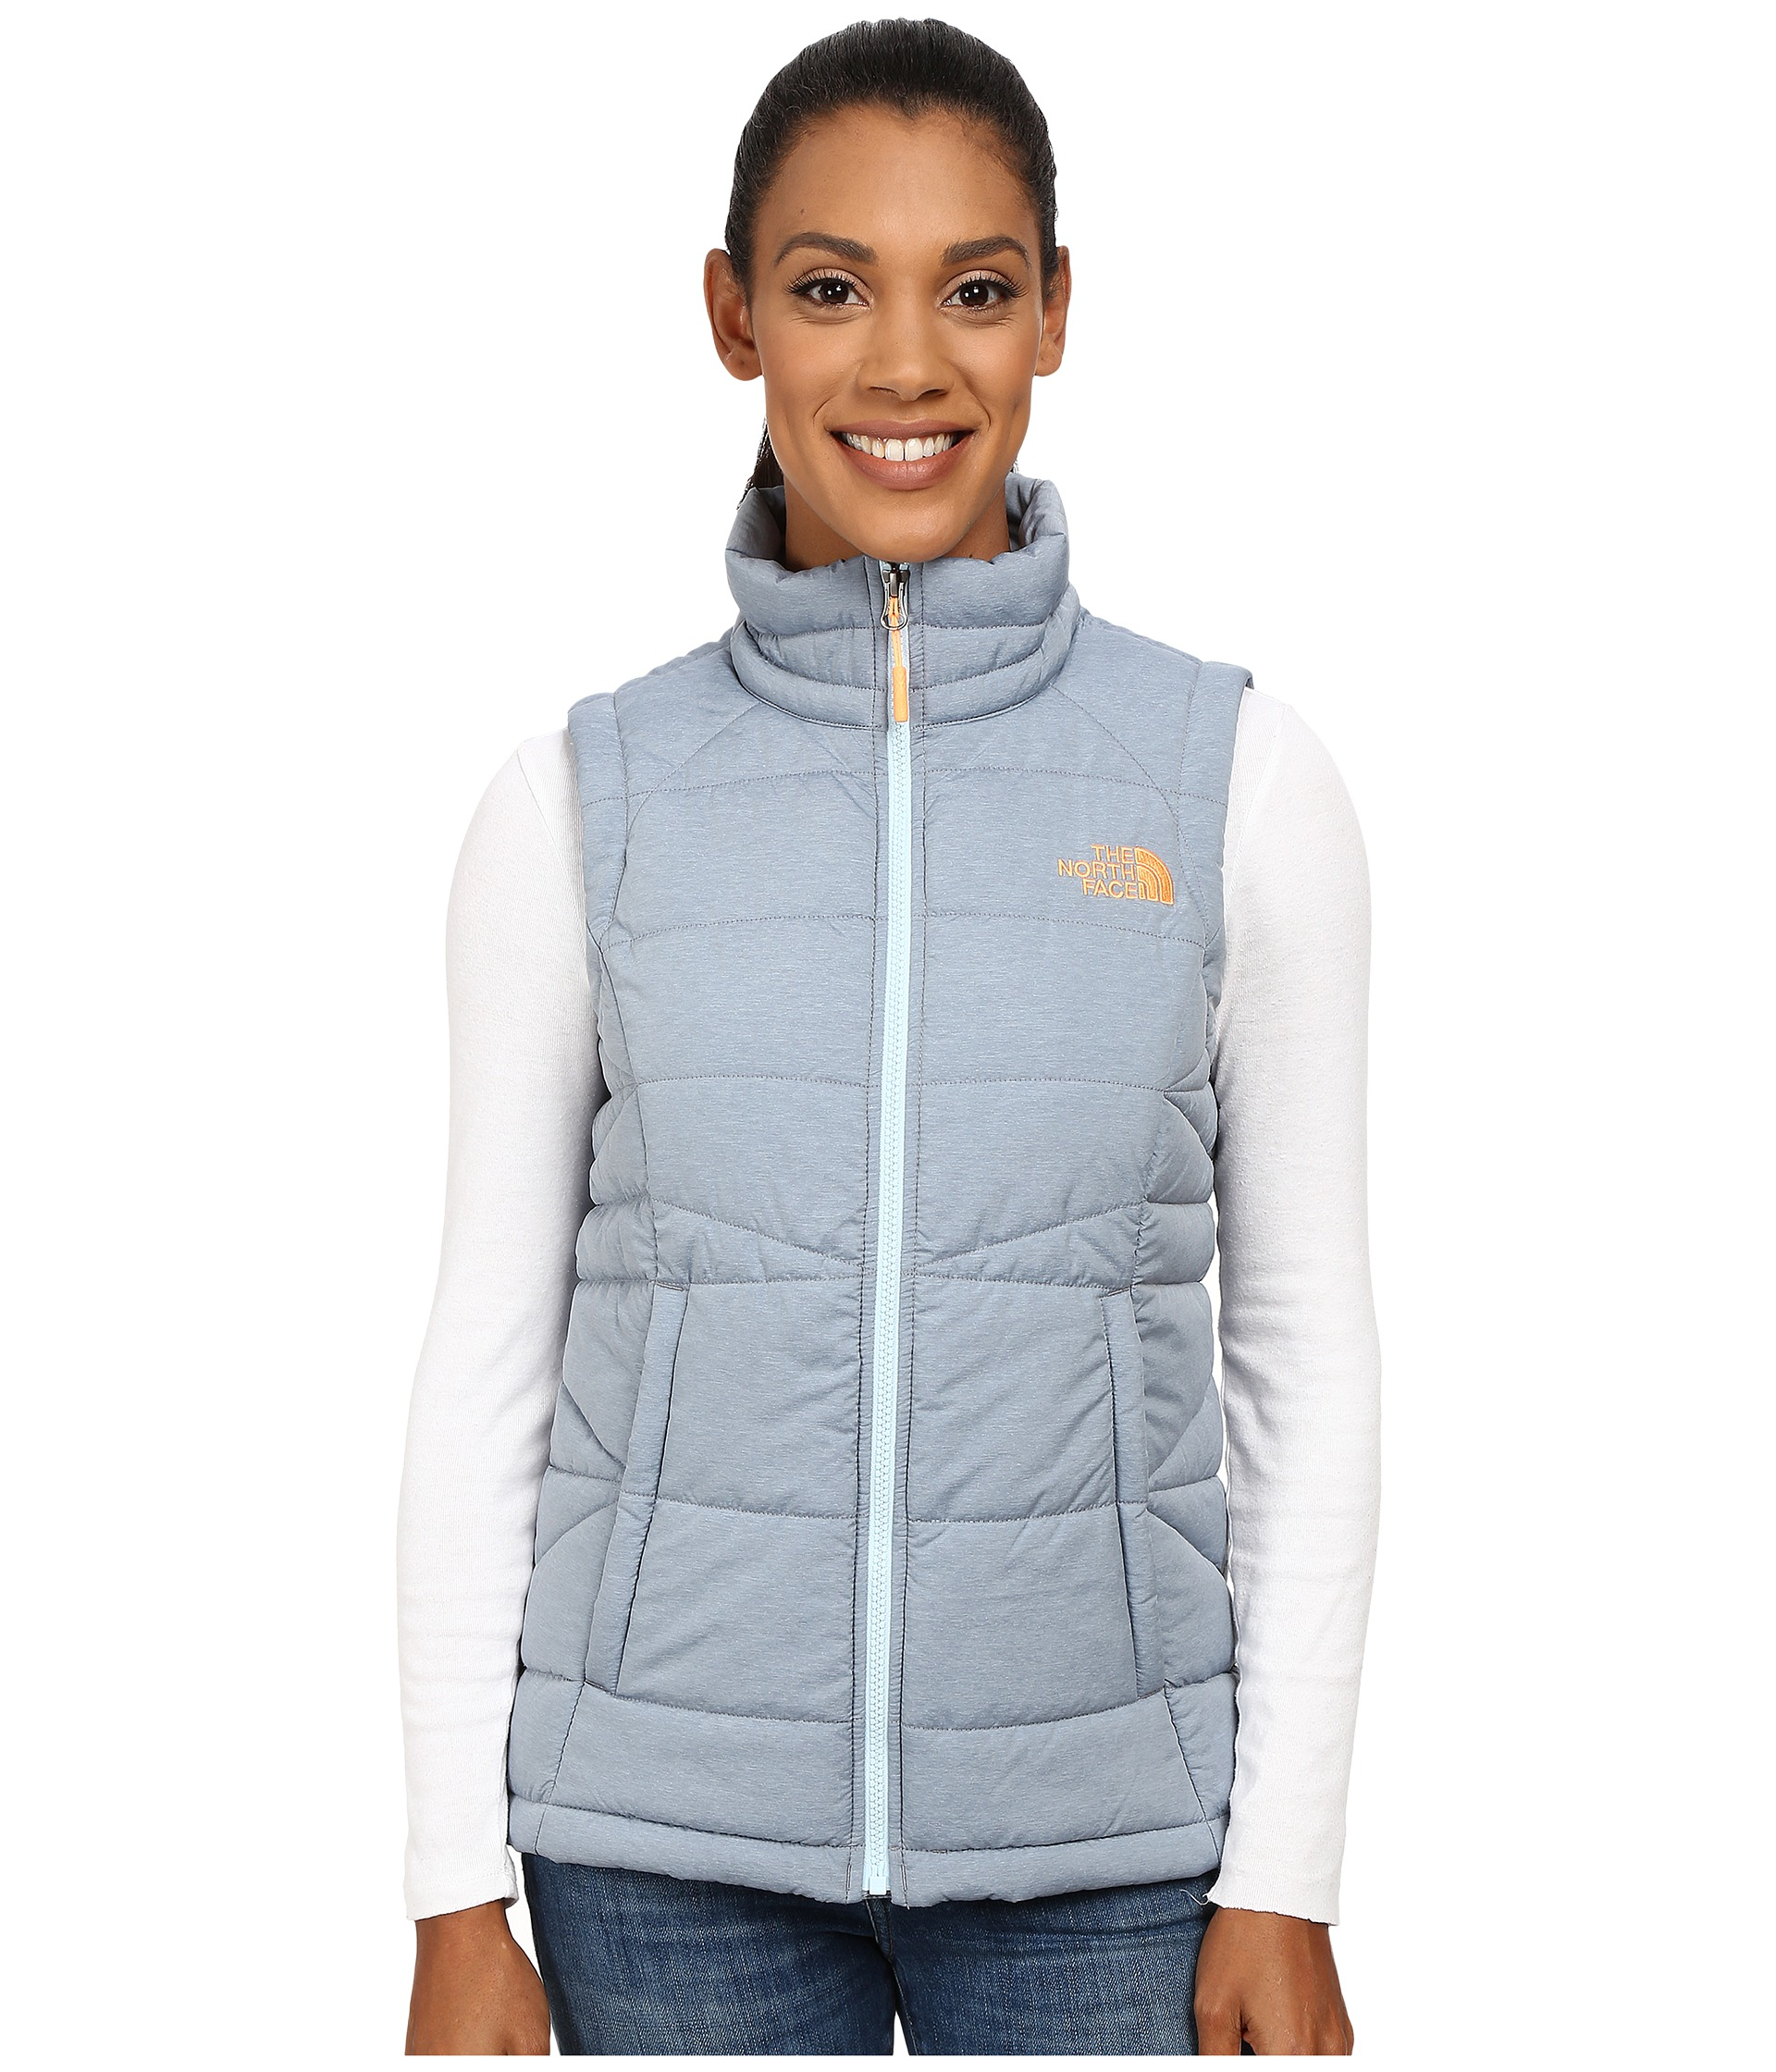 e53c935c39 Lyst - The North Face Roamer Vest in Blue